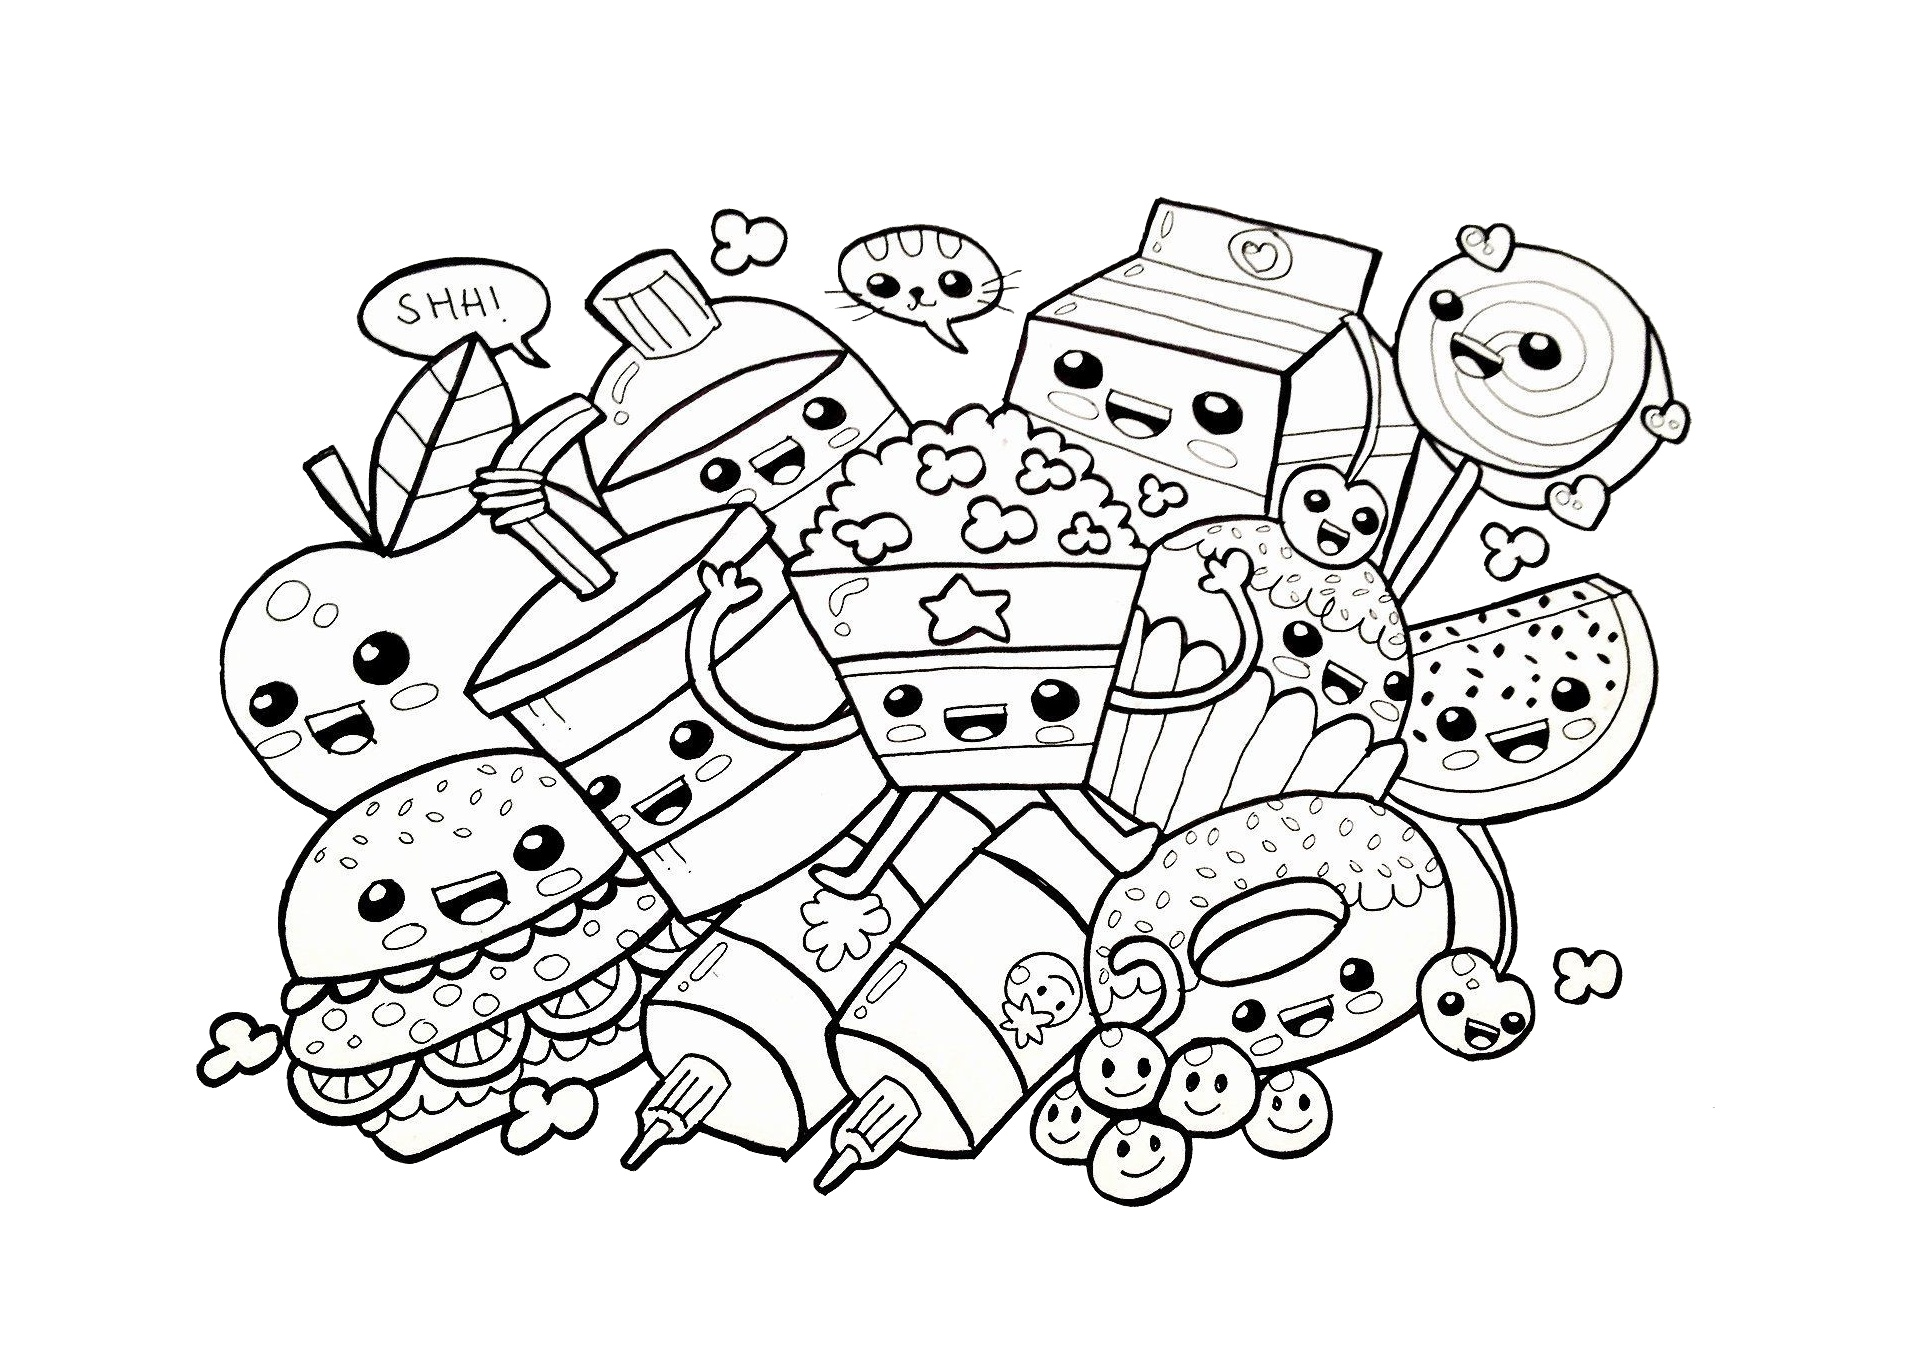 Fun Easyble Coloring Pages Free For Adults With Numbers Toddlers ... | 1350x1920